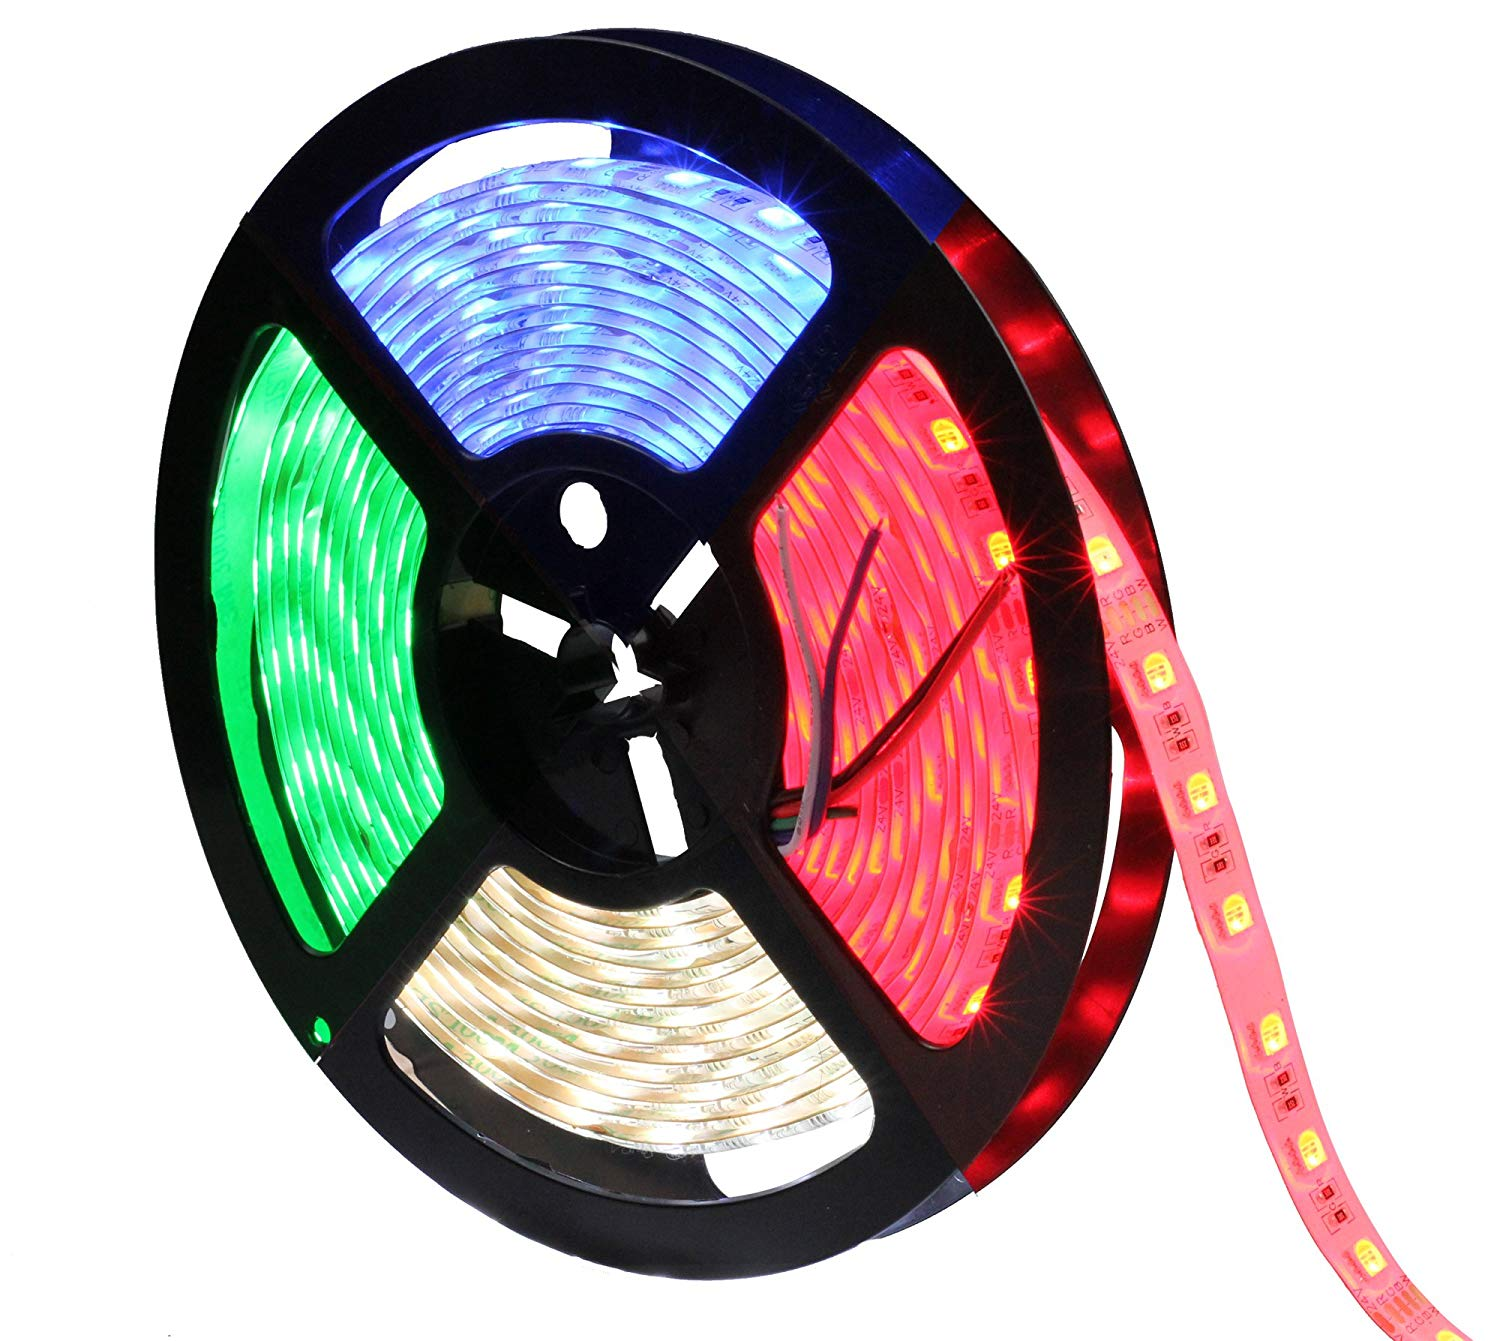 INVOLT 16.4Ft 5050 RGBW LED Strip 300LEDs, RGBCW RGB+Cool Whtie 4 in 1 Mixed Color 60leds/m, IP65 Waterproof in Slicone Coating, Multi-colored Tape Ribbon Lights w/Strong Sticker